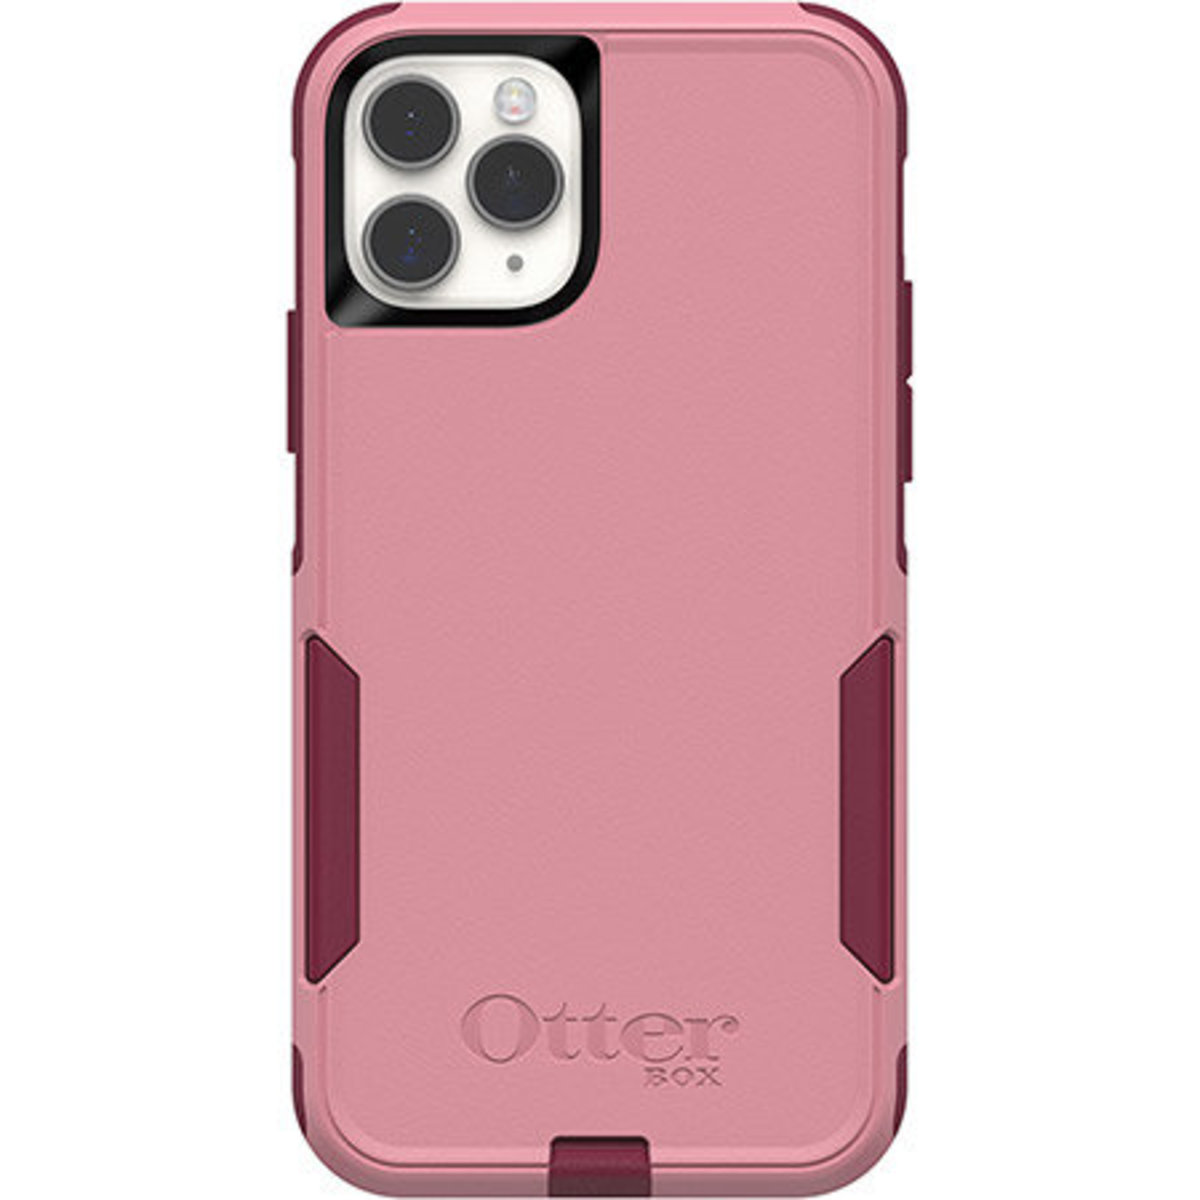 COMMUTER IPHONE 11 PRO -Cupid's Way Pink (77-62527)